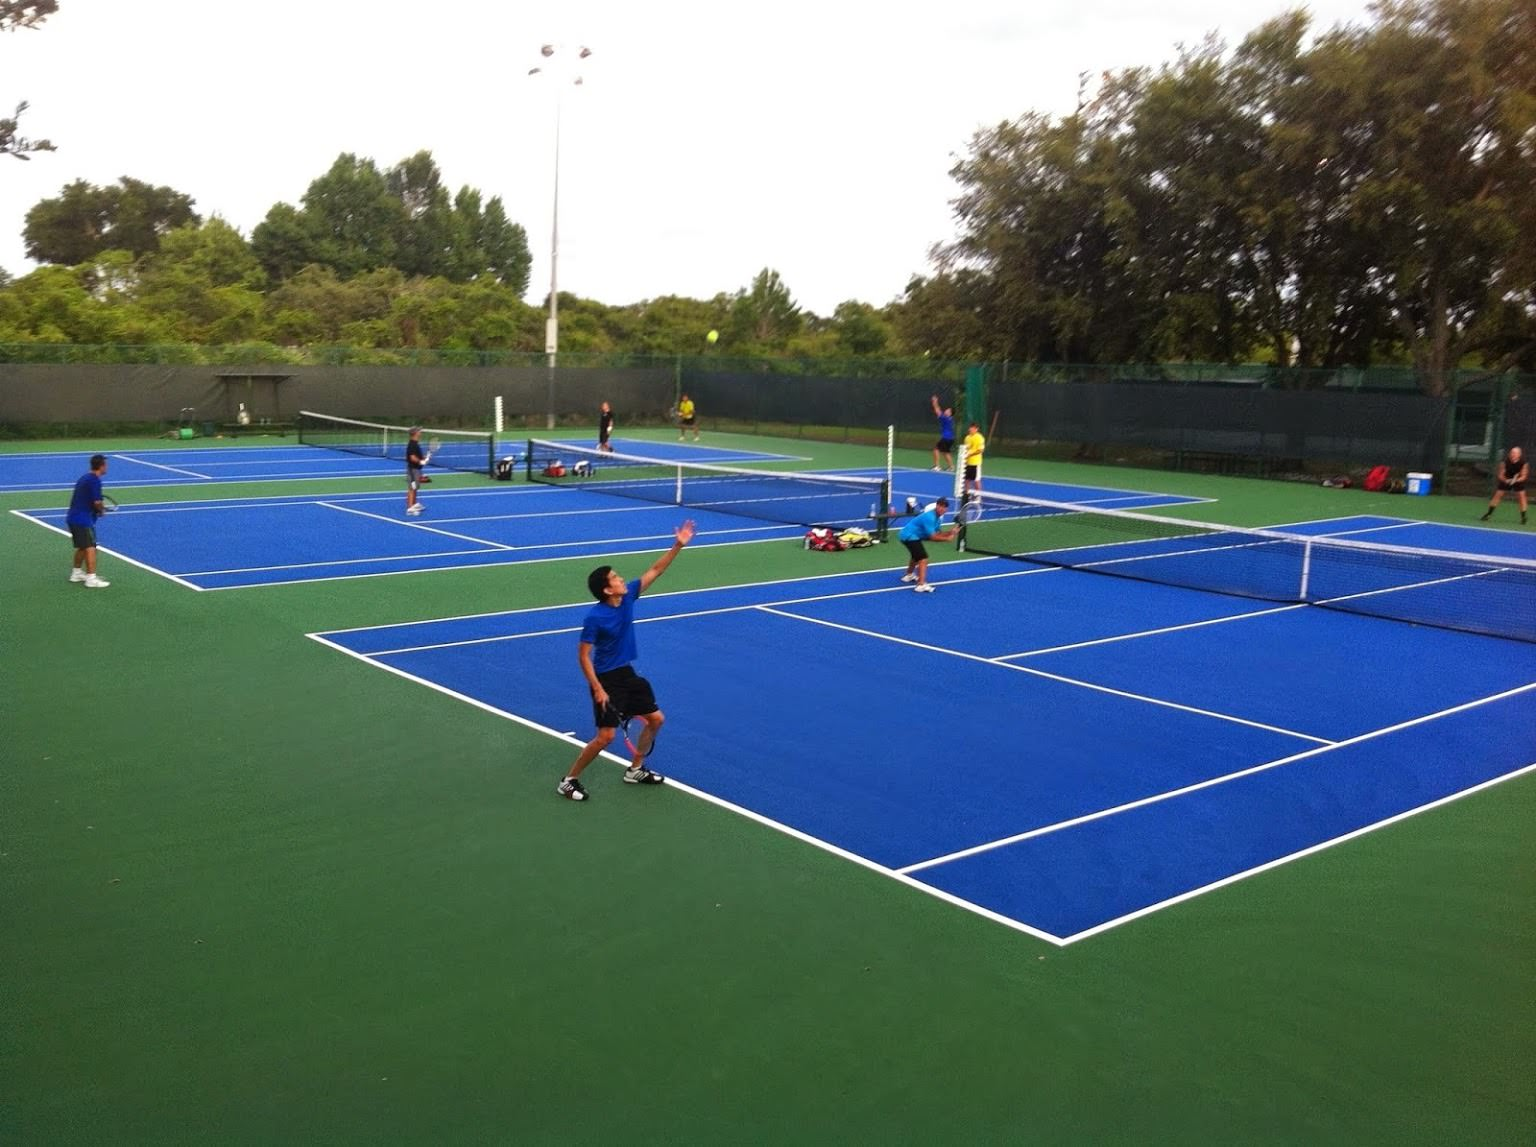 Lake_Cane_Tennis_Center_orlando - disney